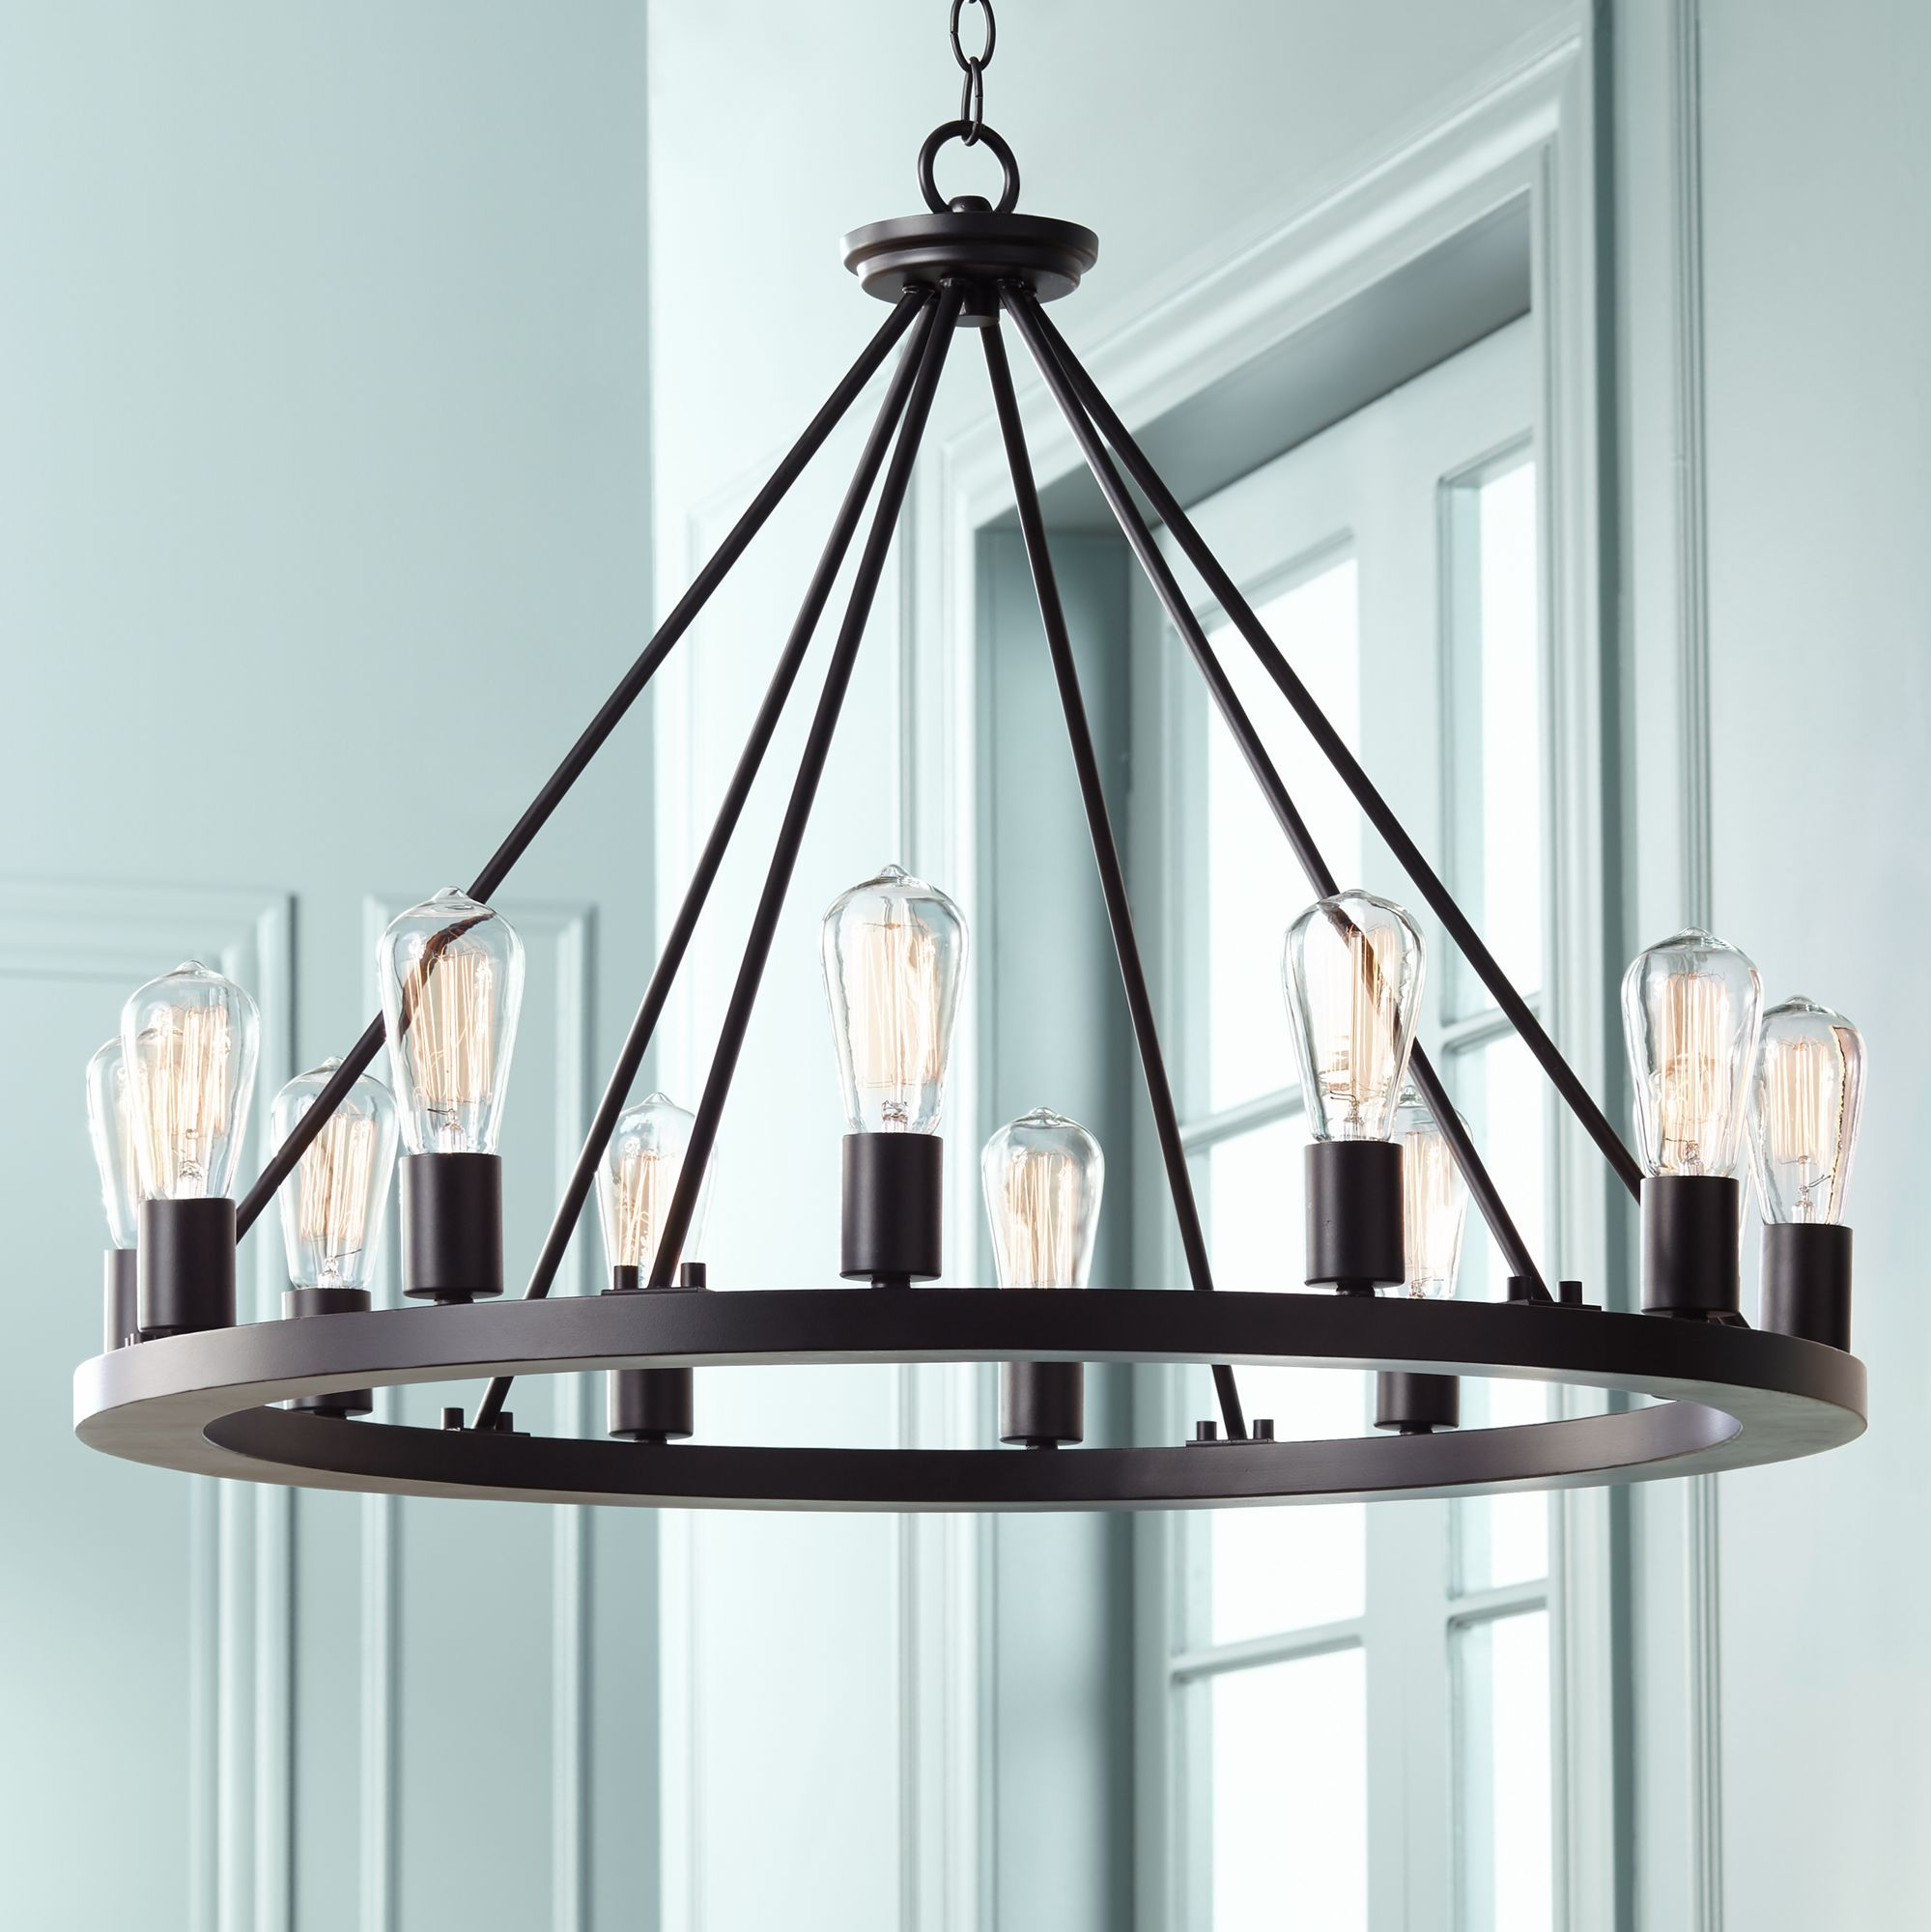 Franklin Iron Works Lacey Round Black 30 Inch W Chandelier Euw7307 Euro Style Ligh Dining Room Chandelier Kitchen Lighting Over Table Living Room Lighting